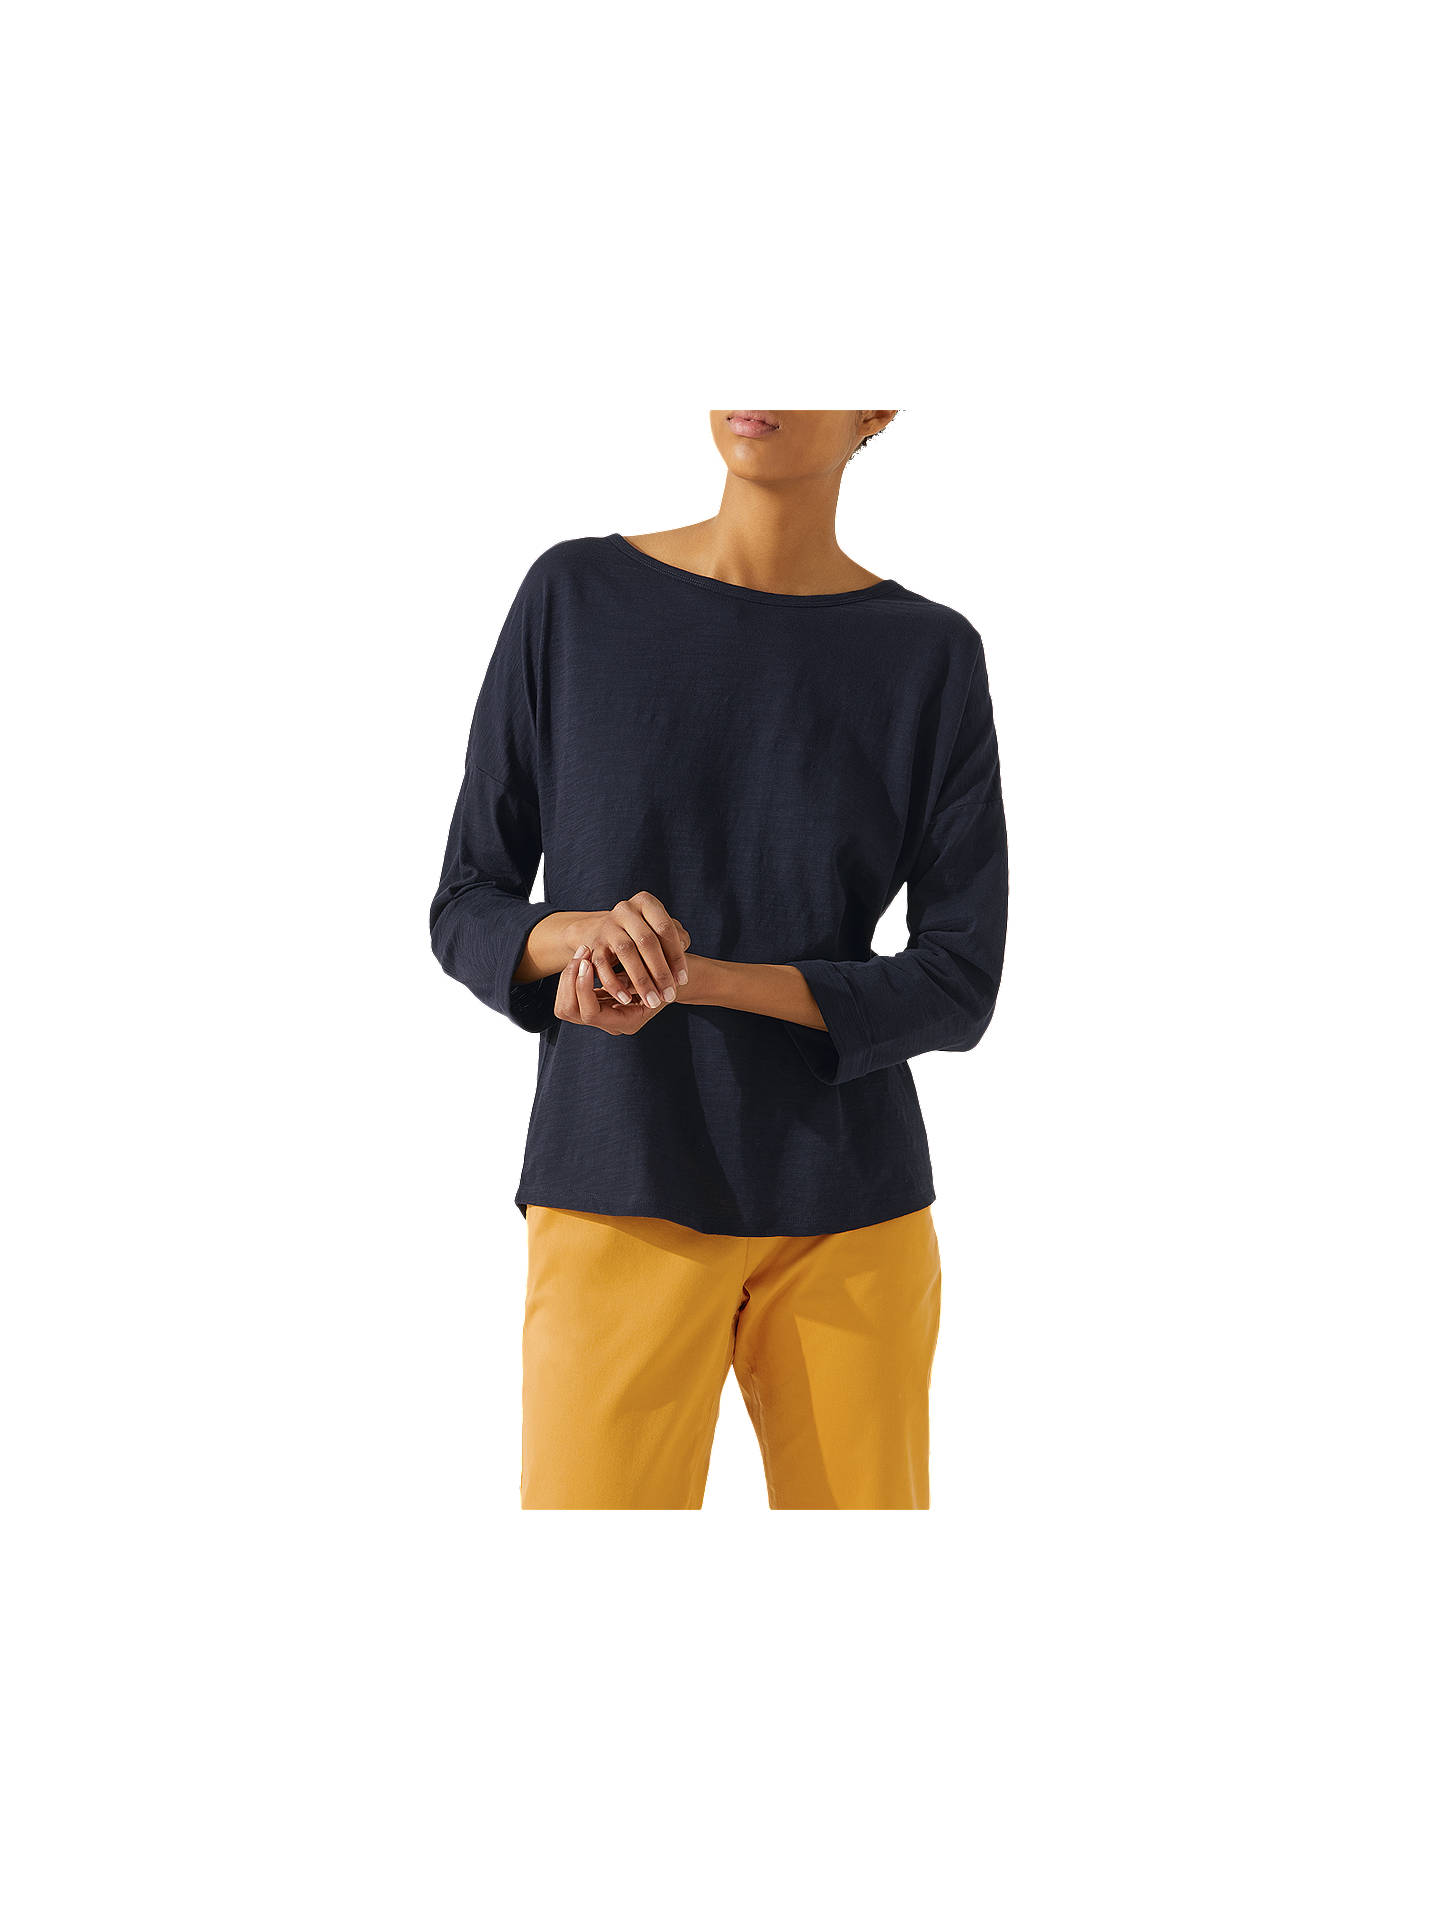 BuyJigsaw Cotton Slub T-Shirt, Navy, XS Online at johnlewis.com